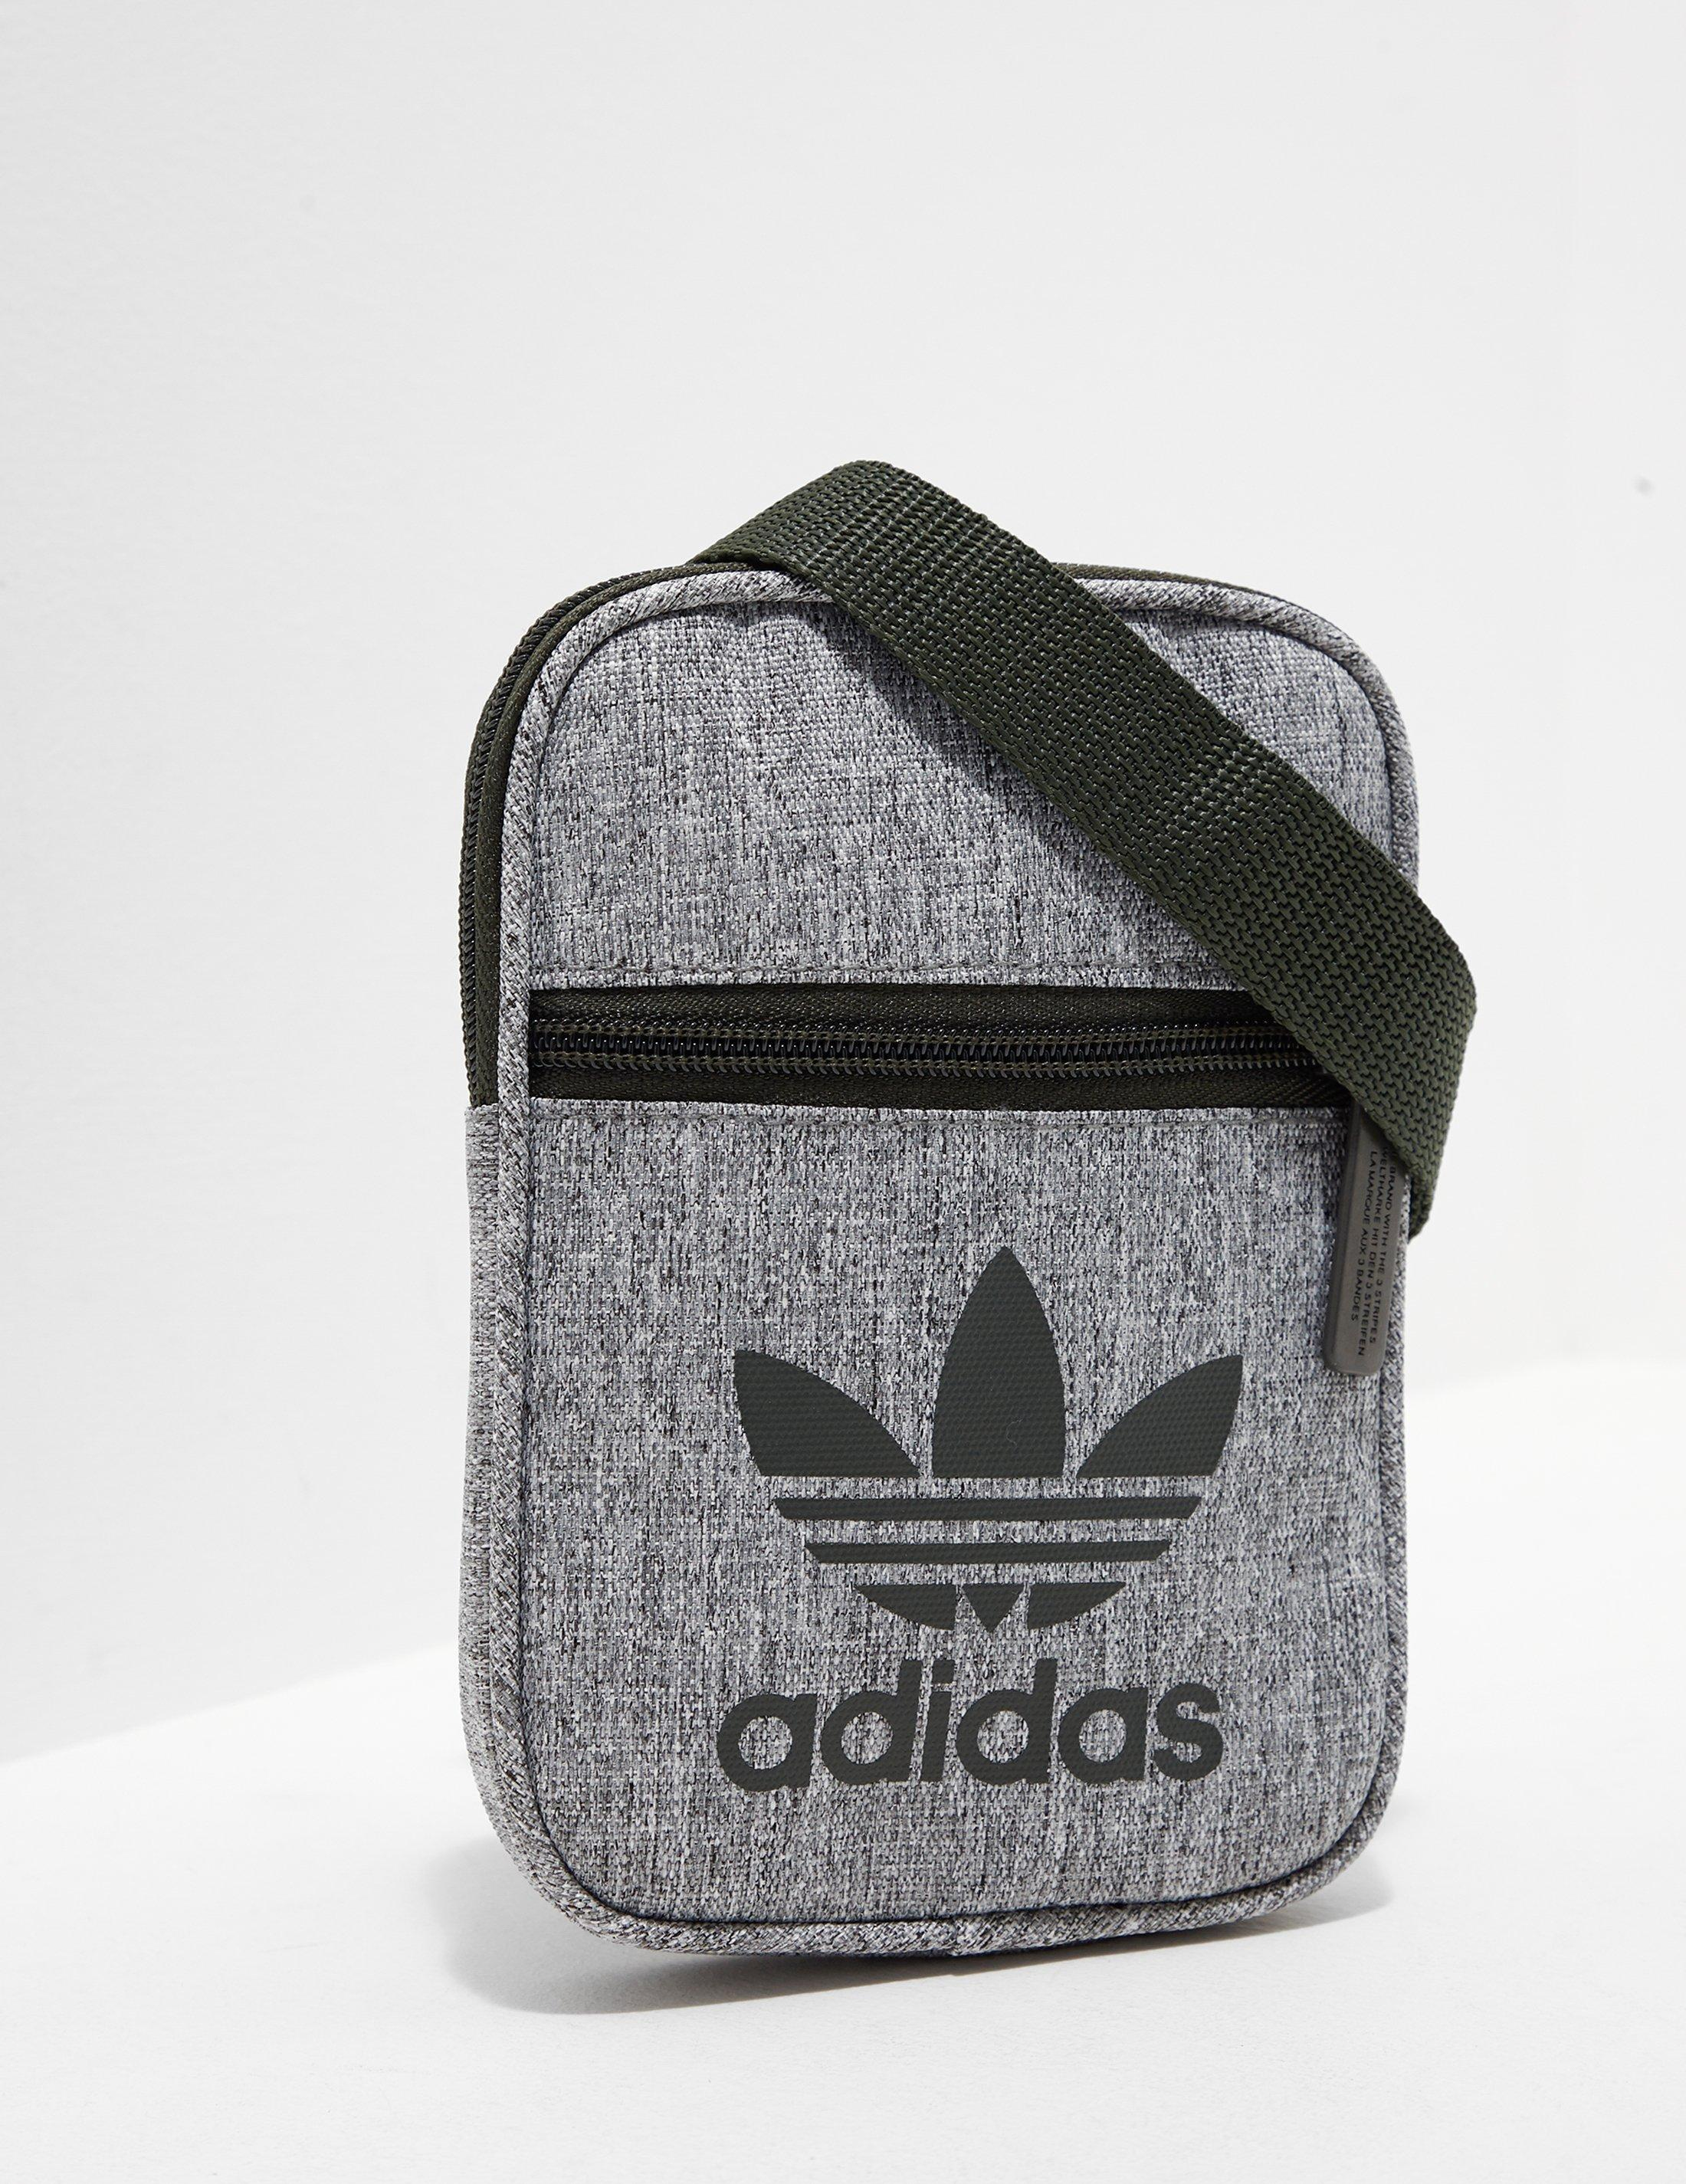 5c00337be3e8 Lyst - adidas Originals Womens Festival Bag Night Cargo white in ...